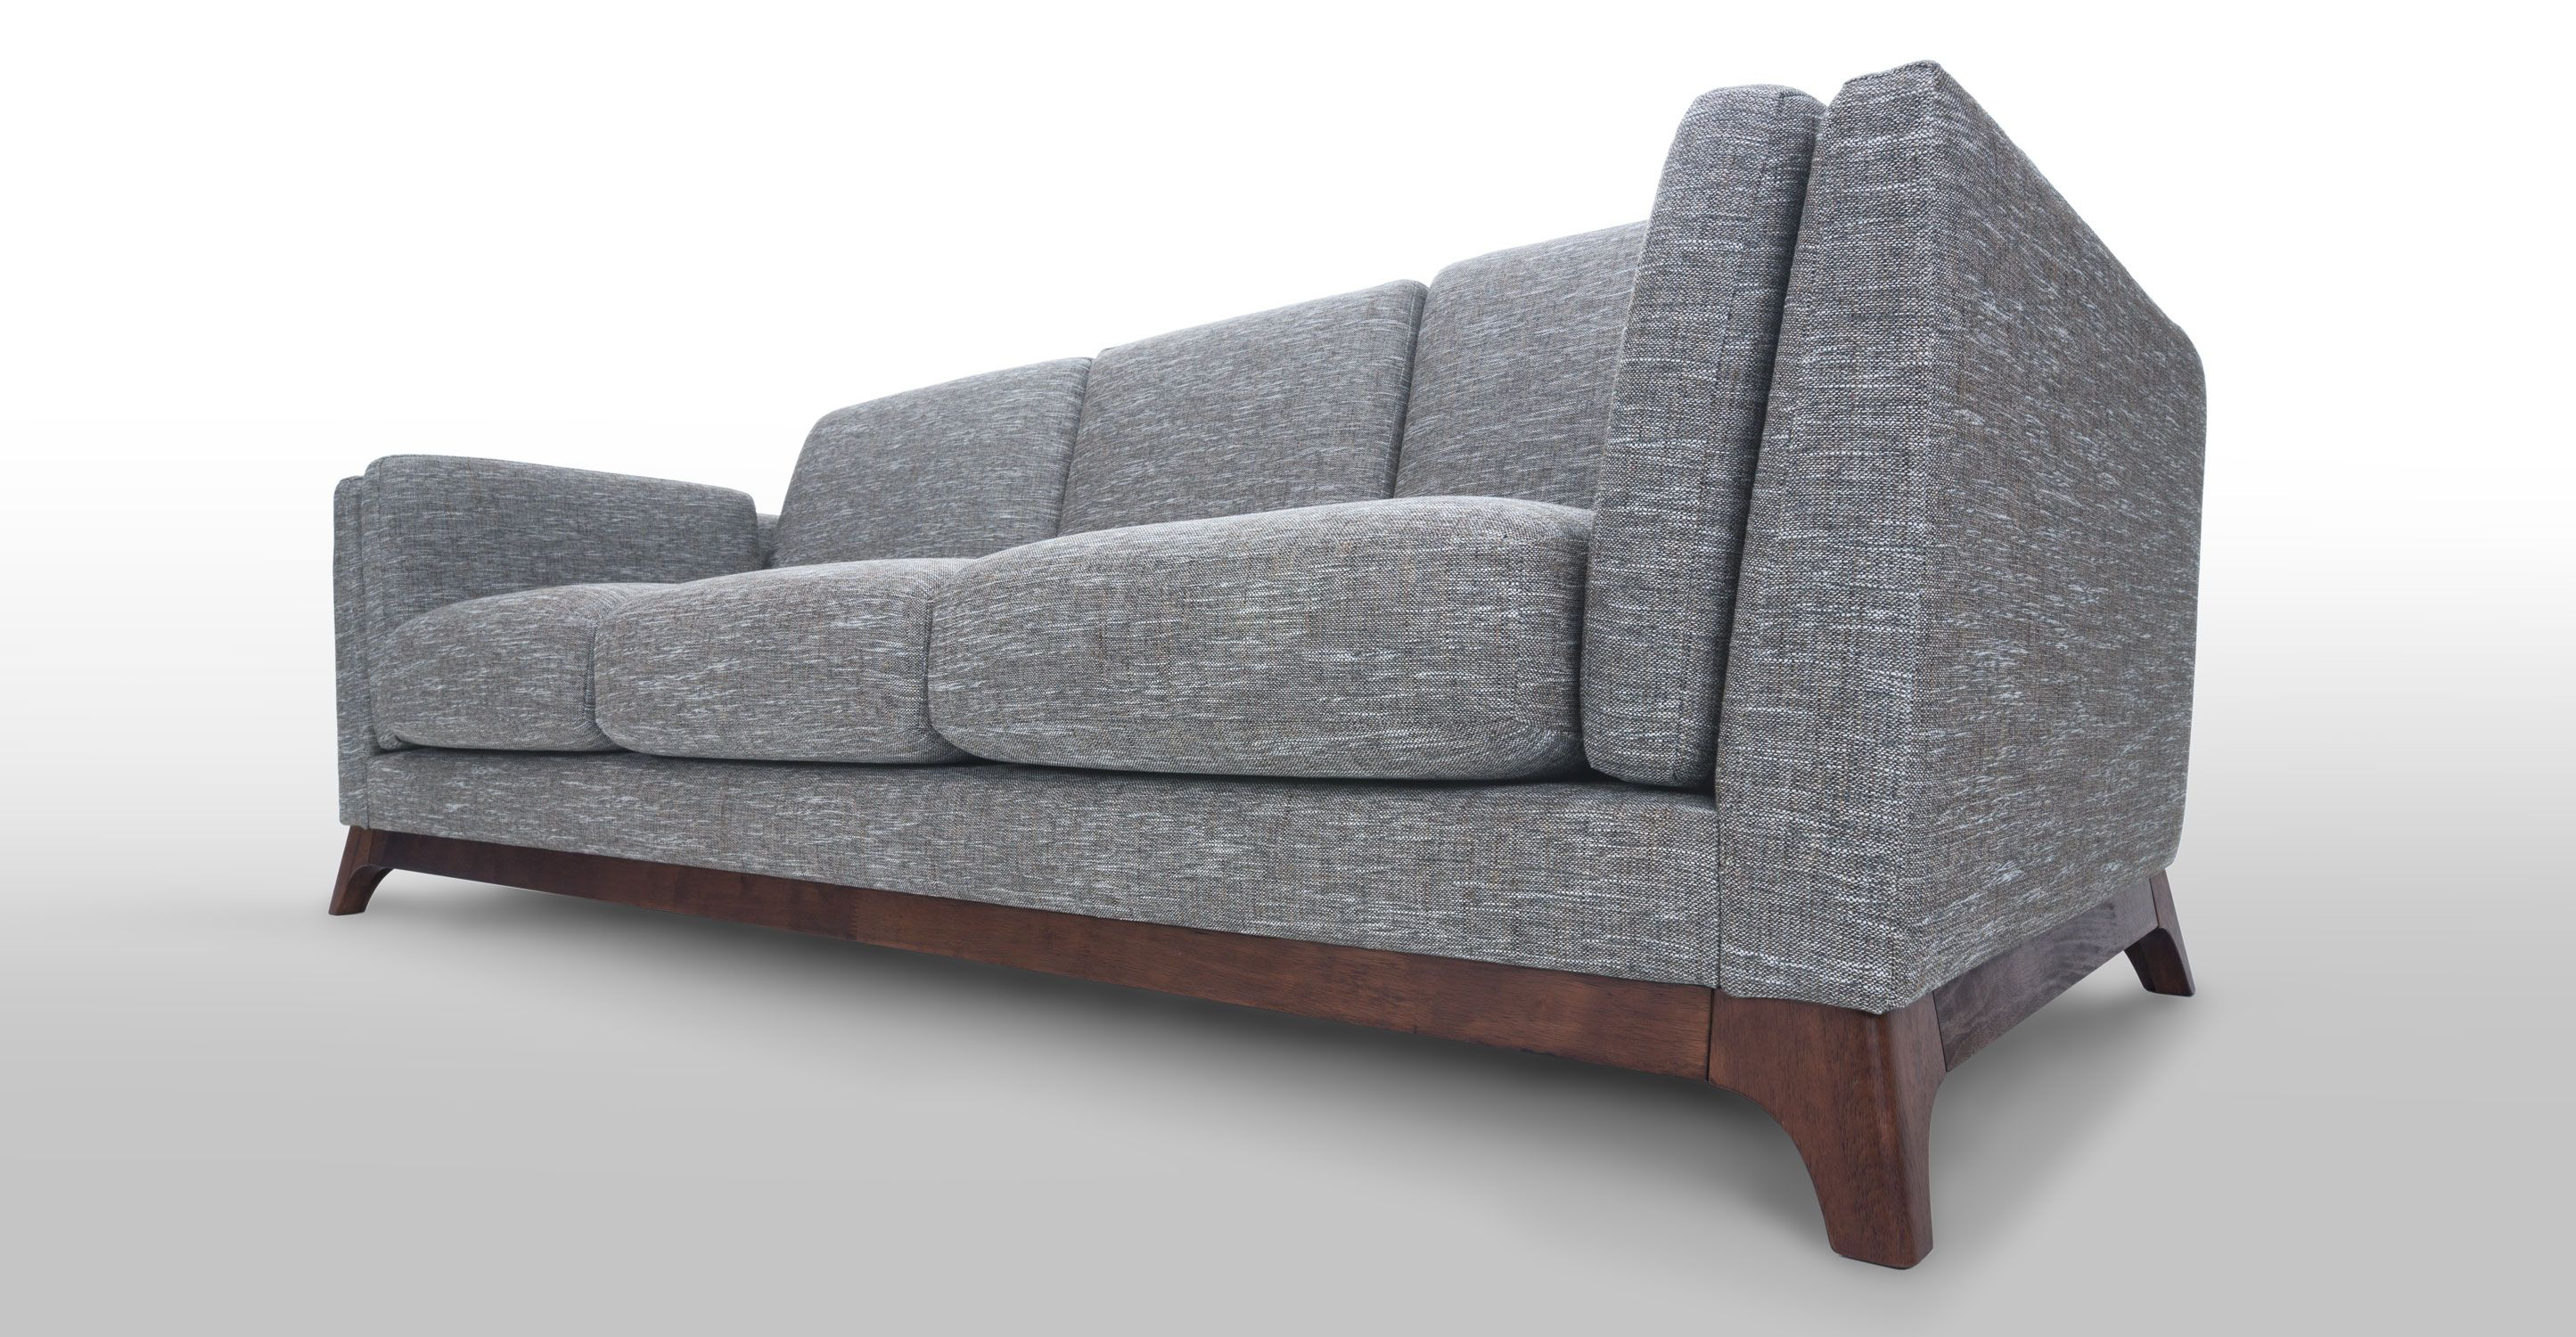 Gray Sofa 3 Seater With Solid Wood Legs Article Ceni Modern